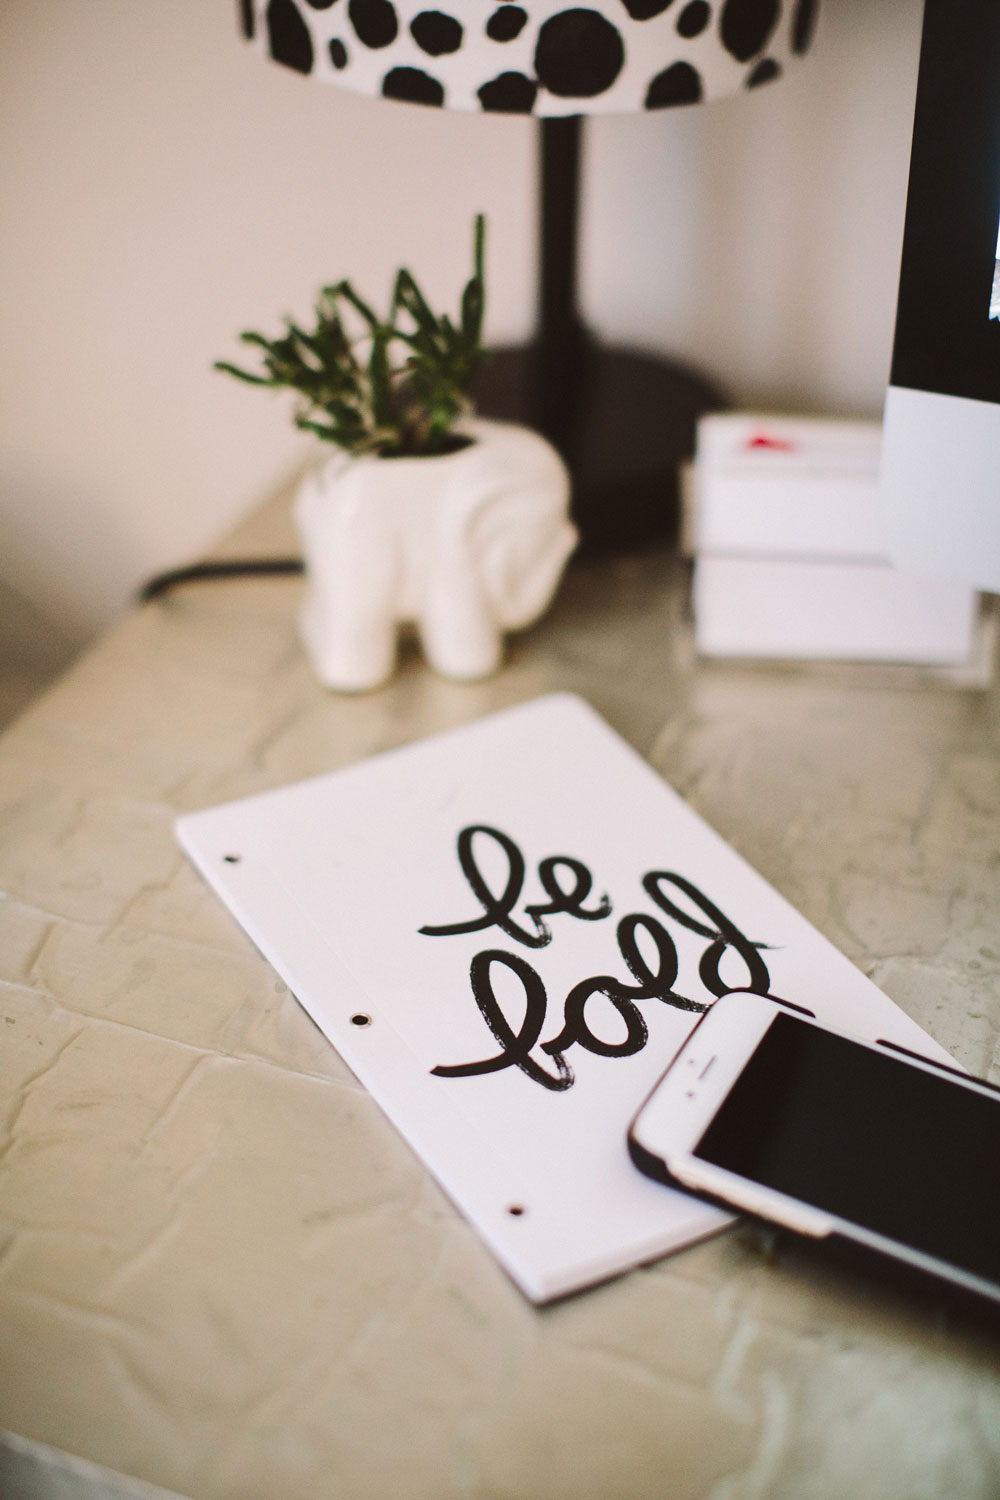 blogging tips and tricks: growing your following, social media strategy, working with brands, and making money.